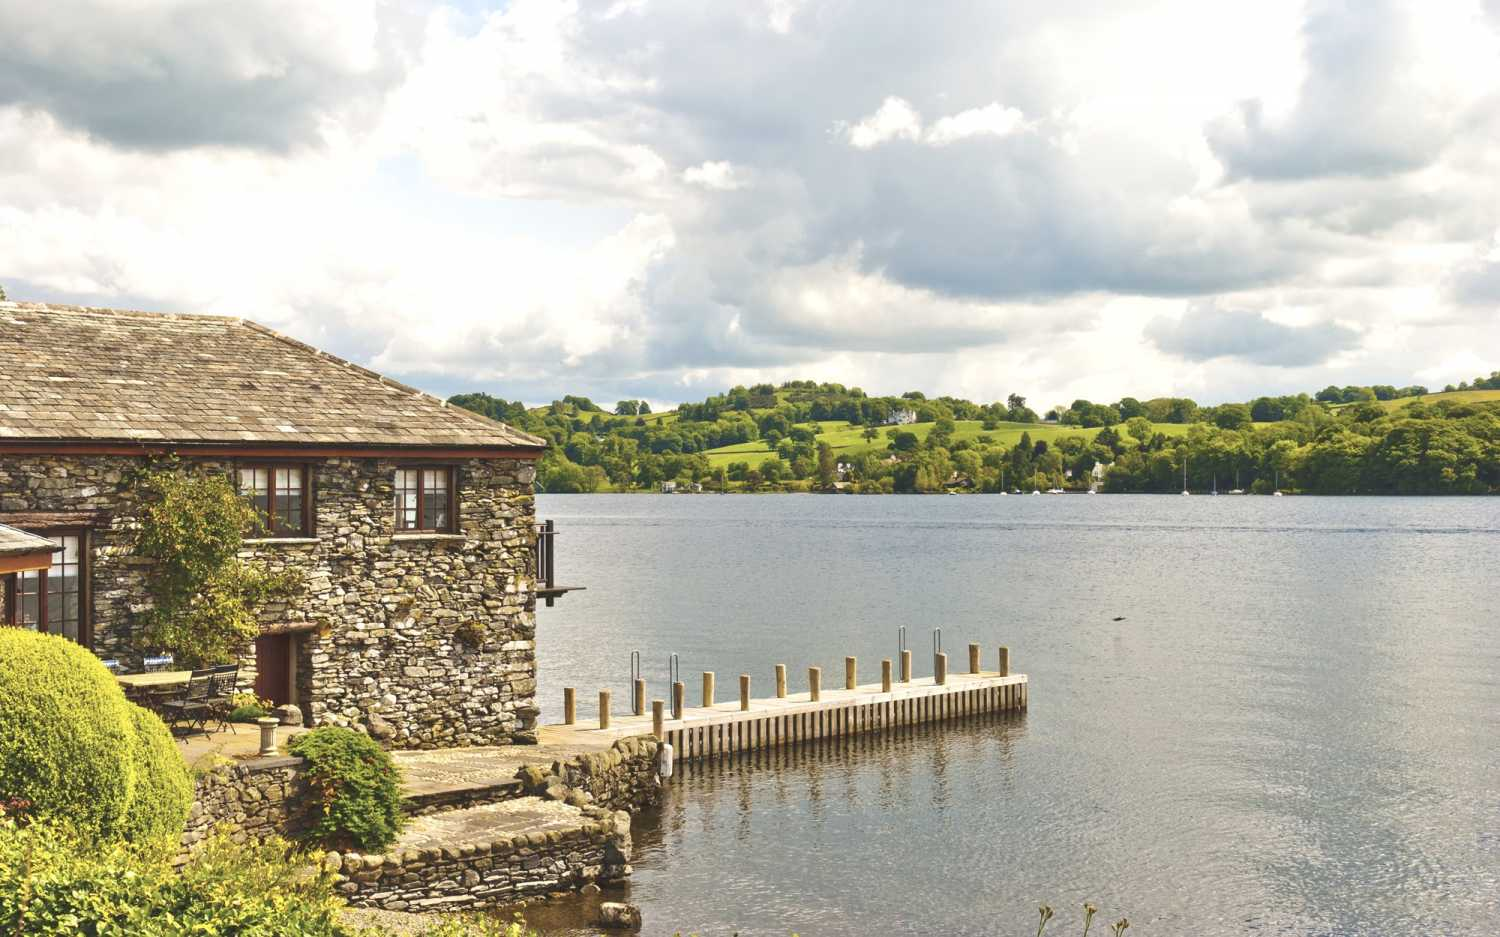 Picture of Bakewell - Last Minute Cottages in Bakewell